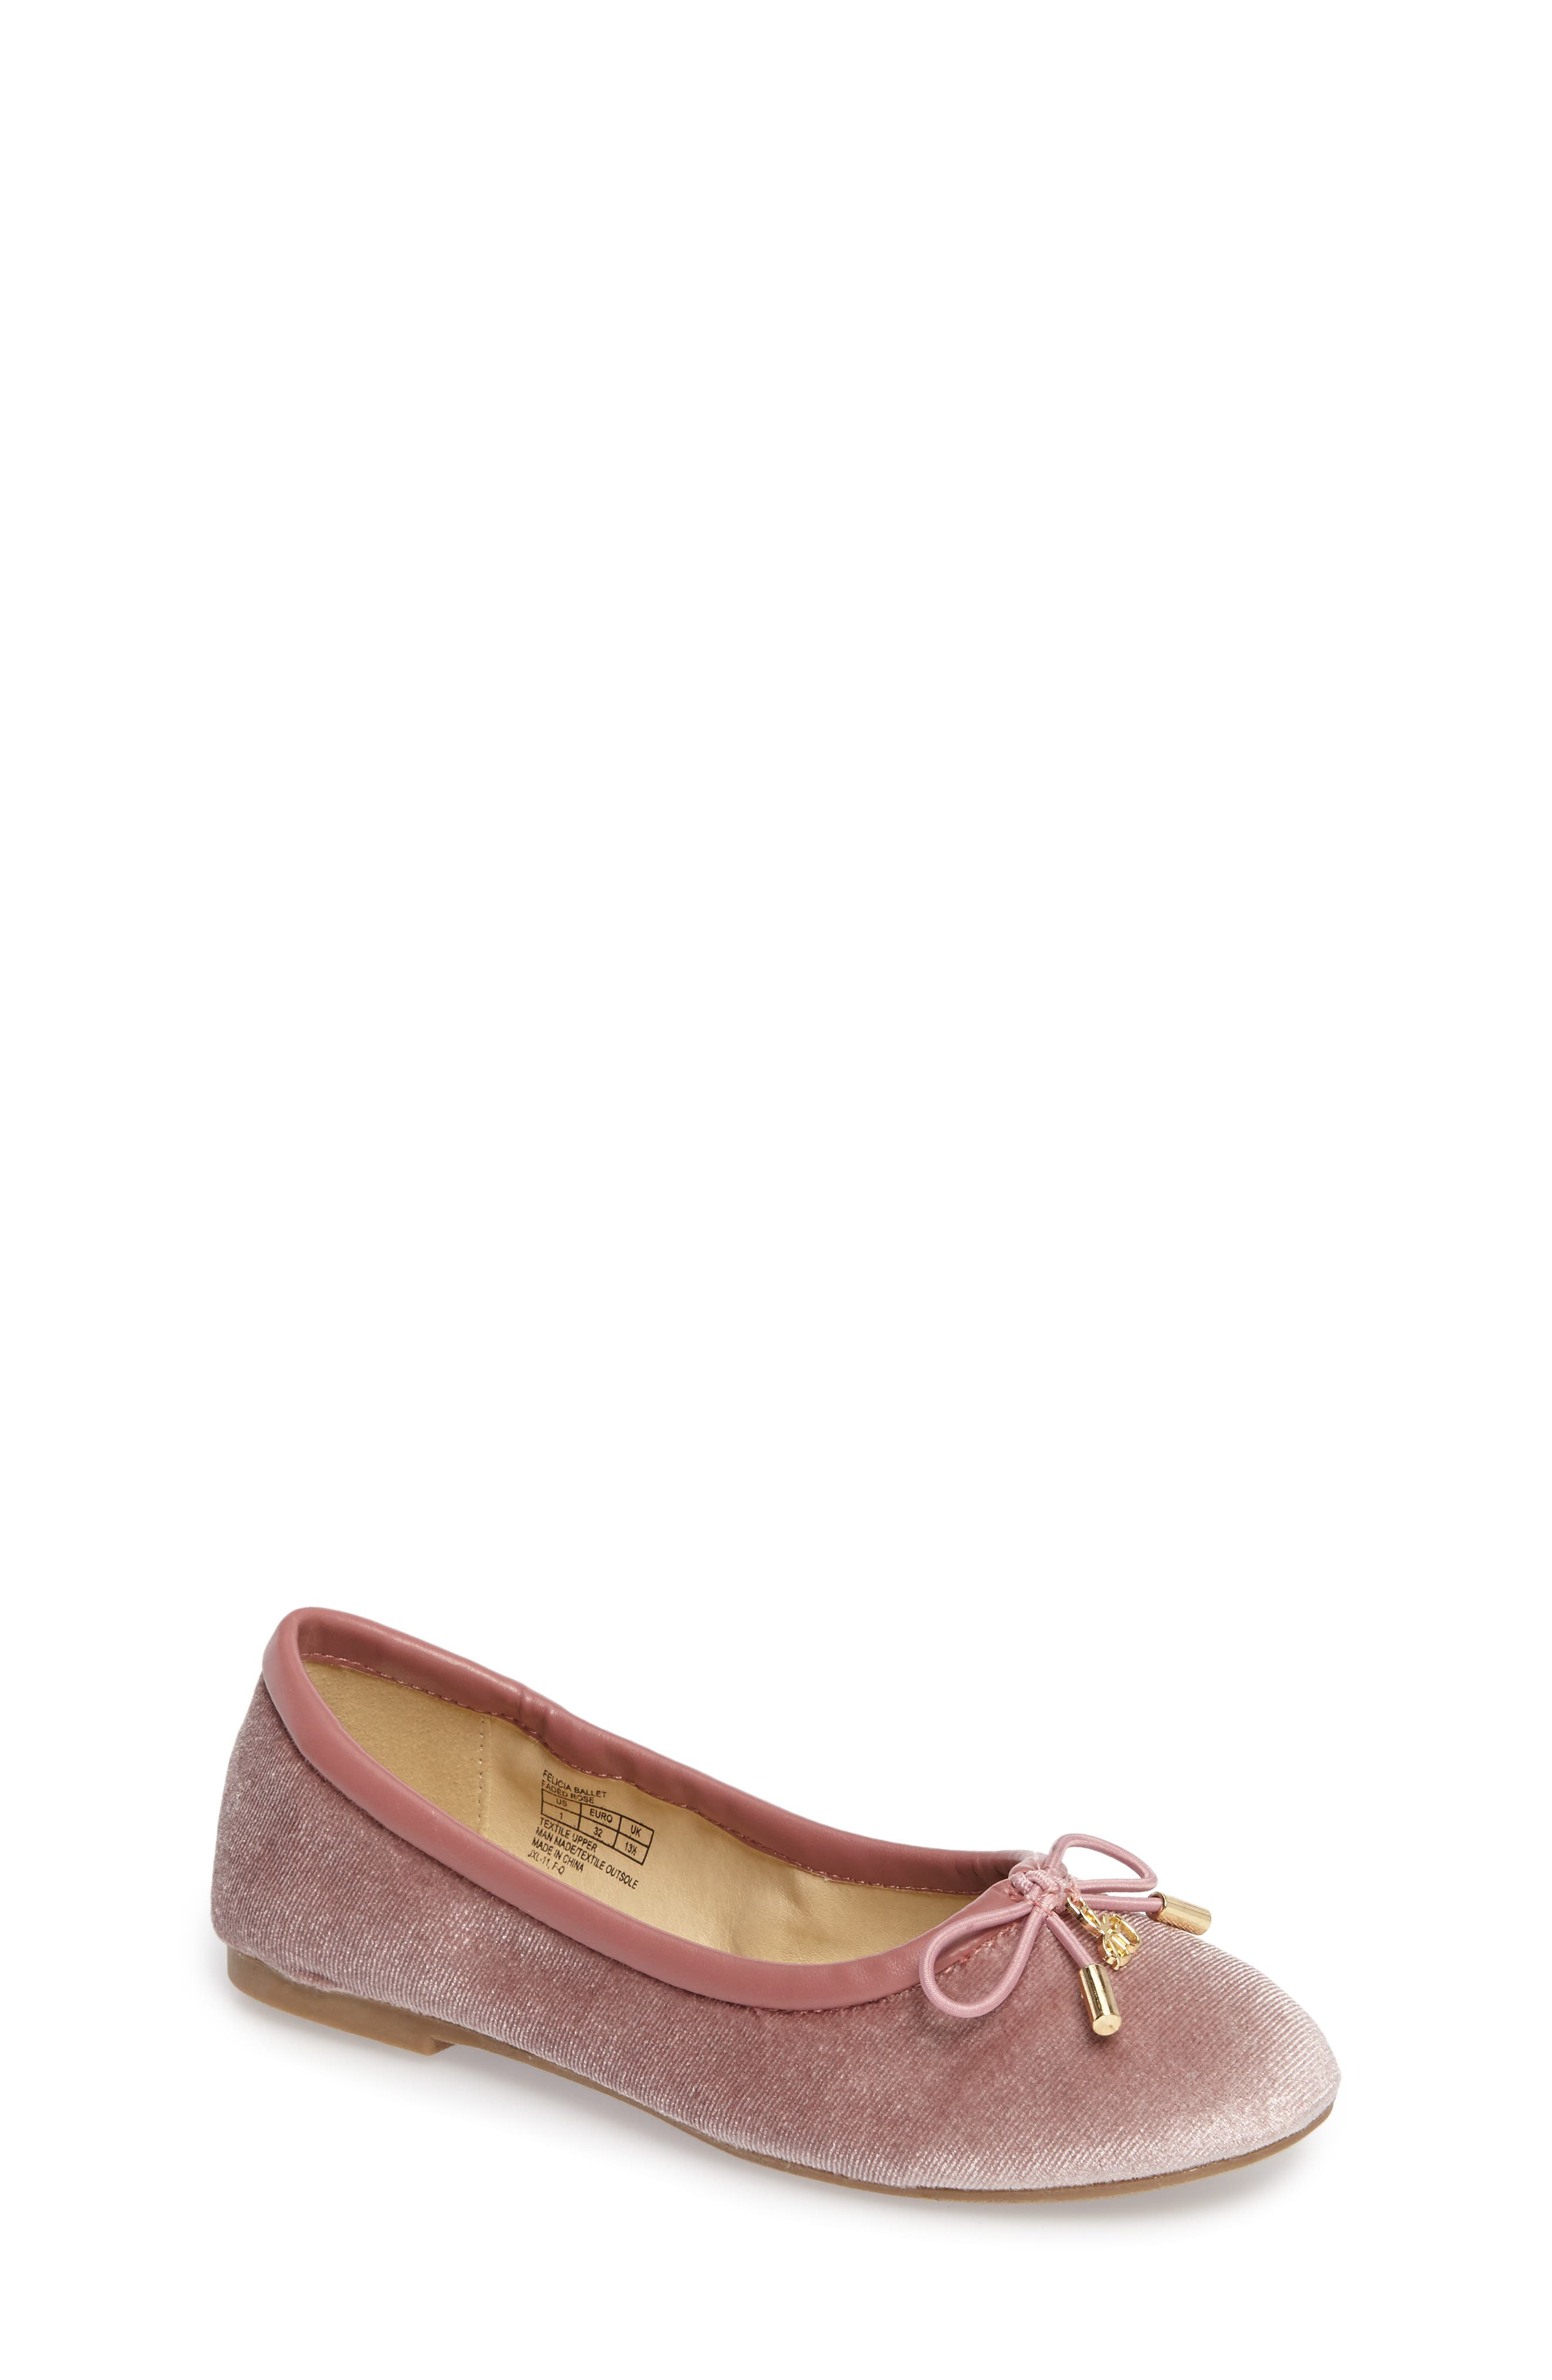 Sam Edelman 'Felicia' Ballet Flat (Toddler, Little Kid & Big Kid)